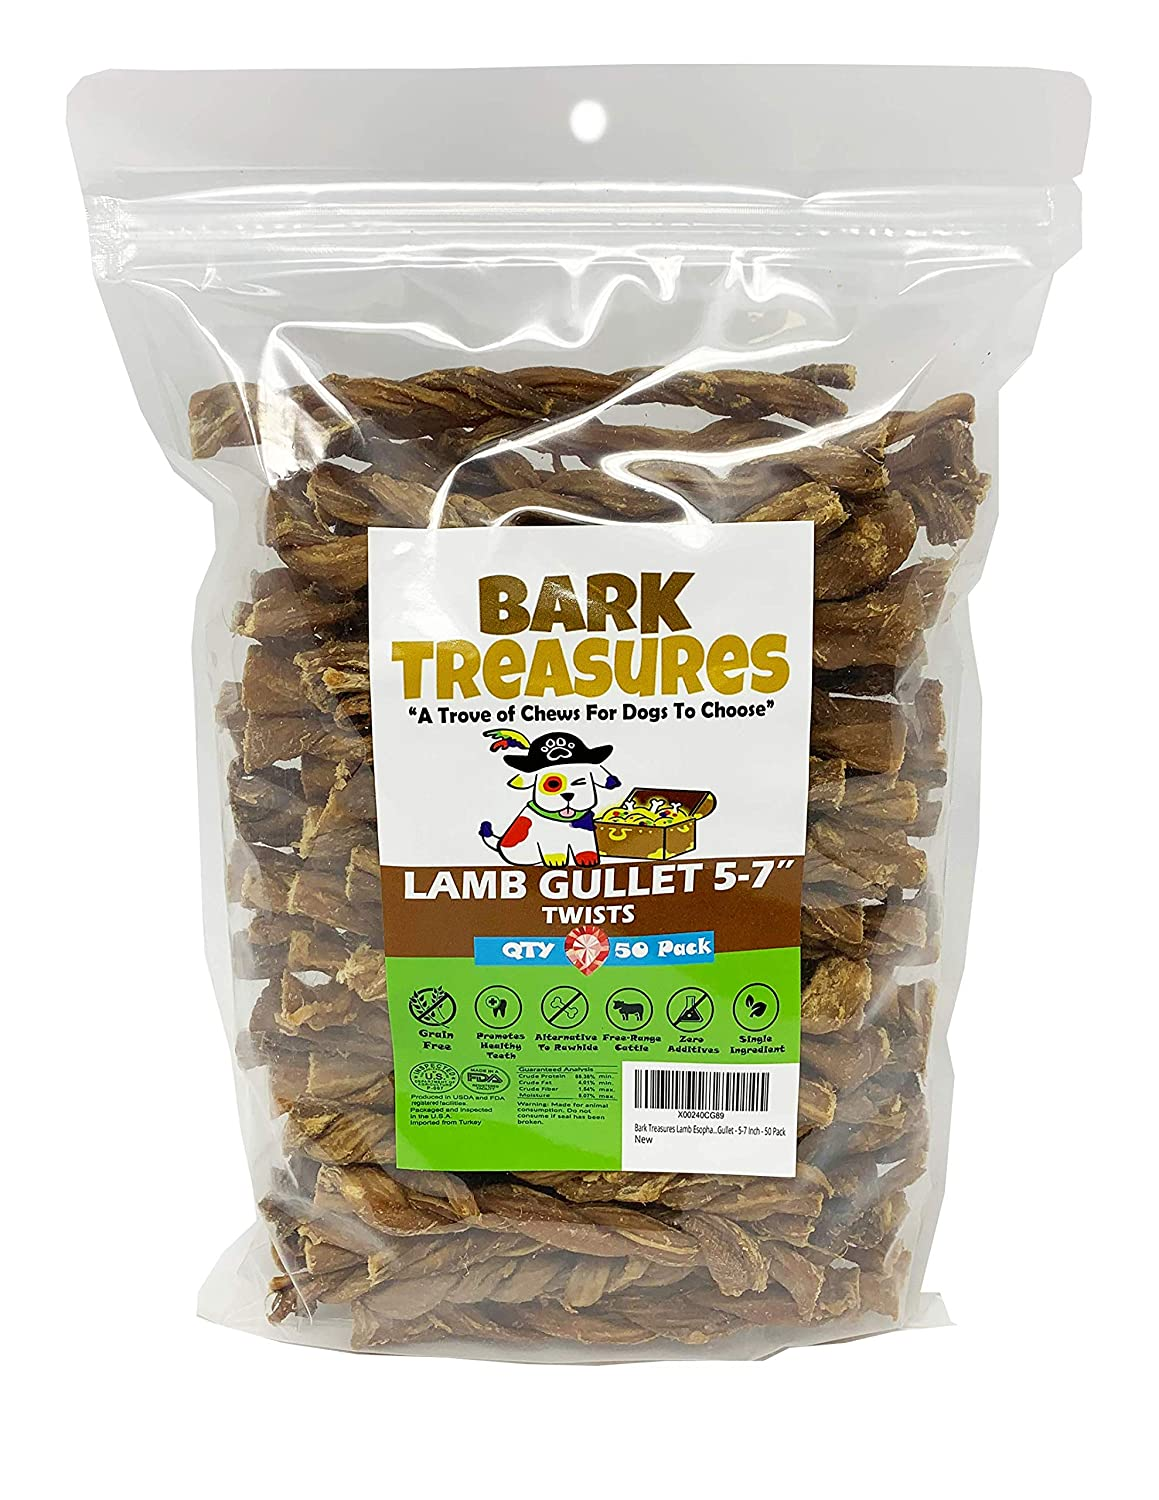 Bark Treasures Lamb Gullet Braids and Twists Dog Treats – Braided Esophagus – Twisted Esophagus Dog Chews